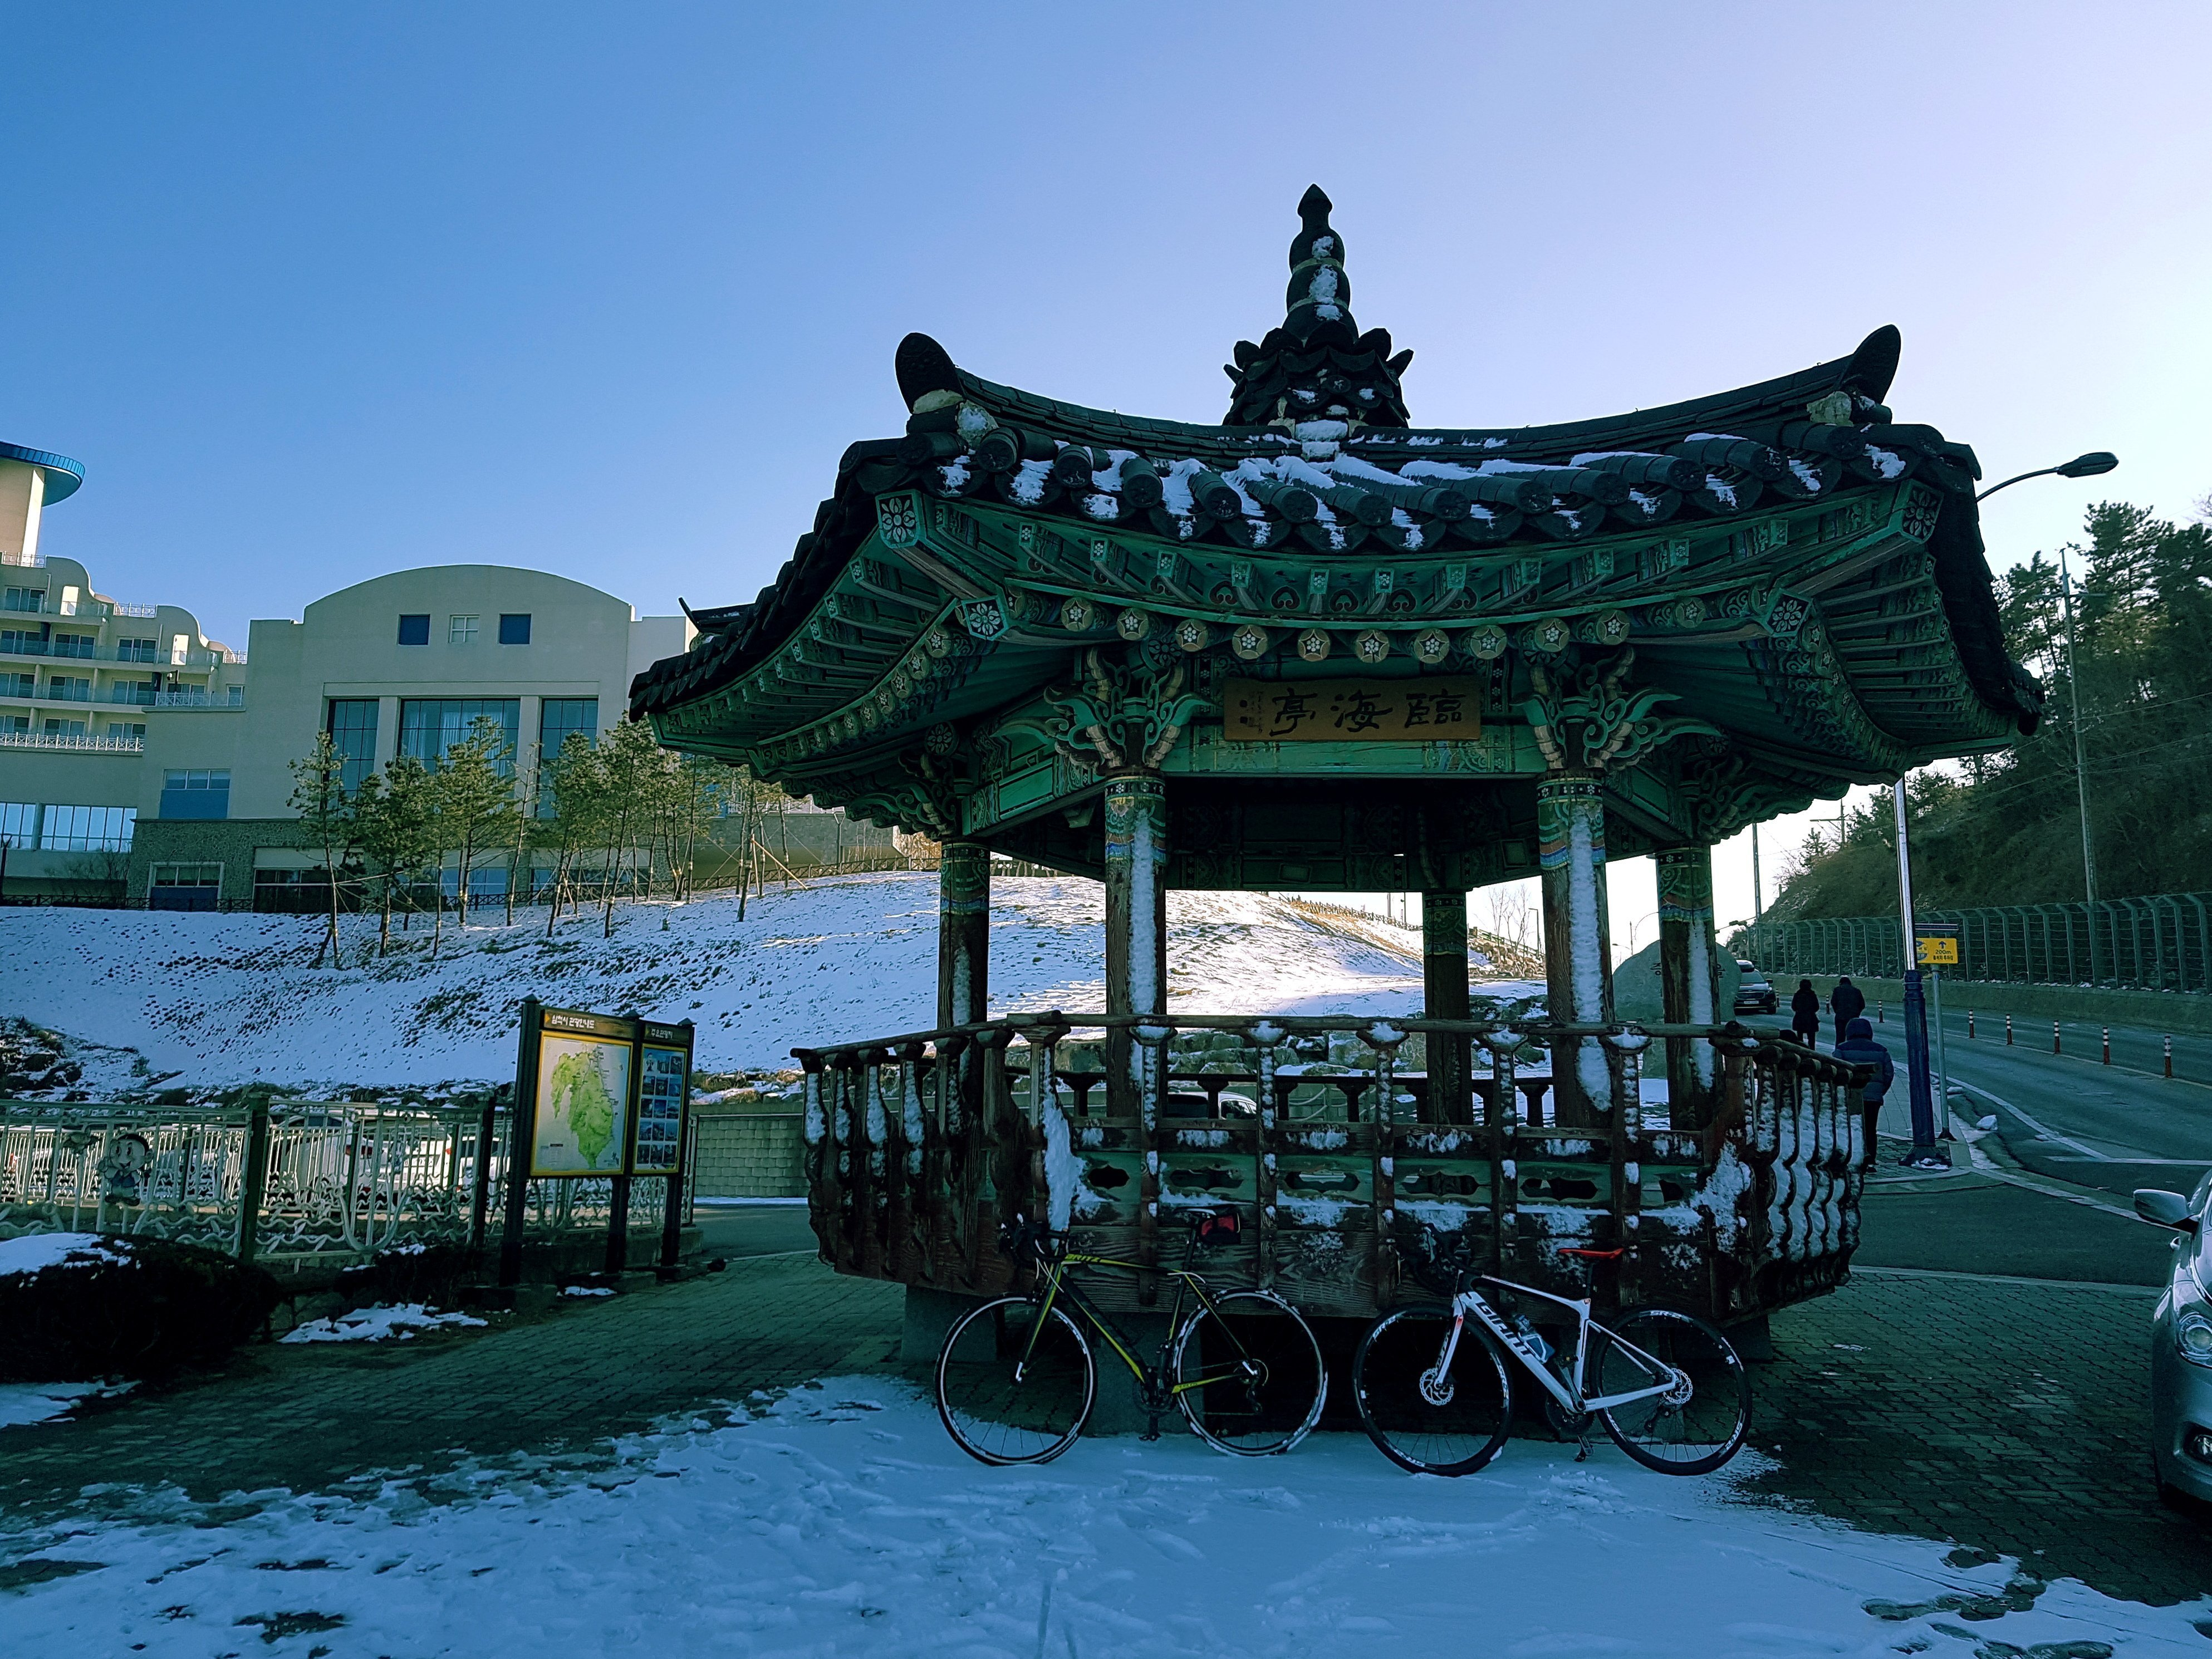 Two bikes sit against a gazebo covered in snow.